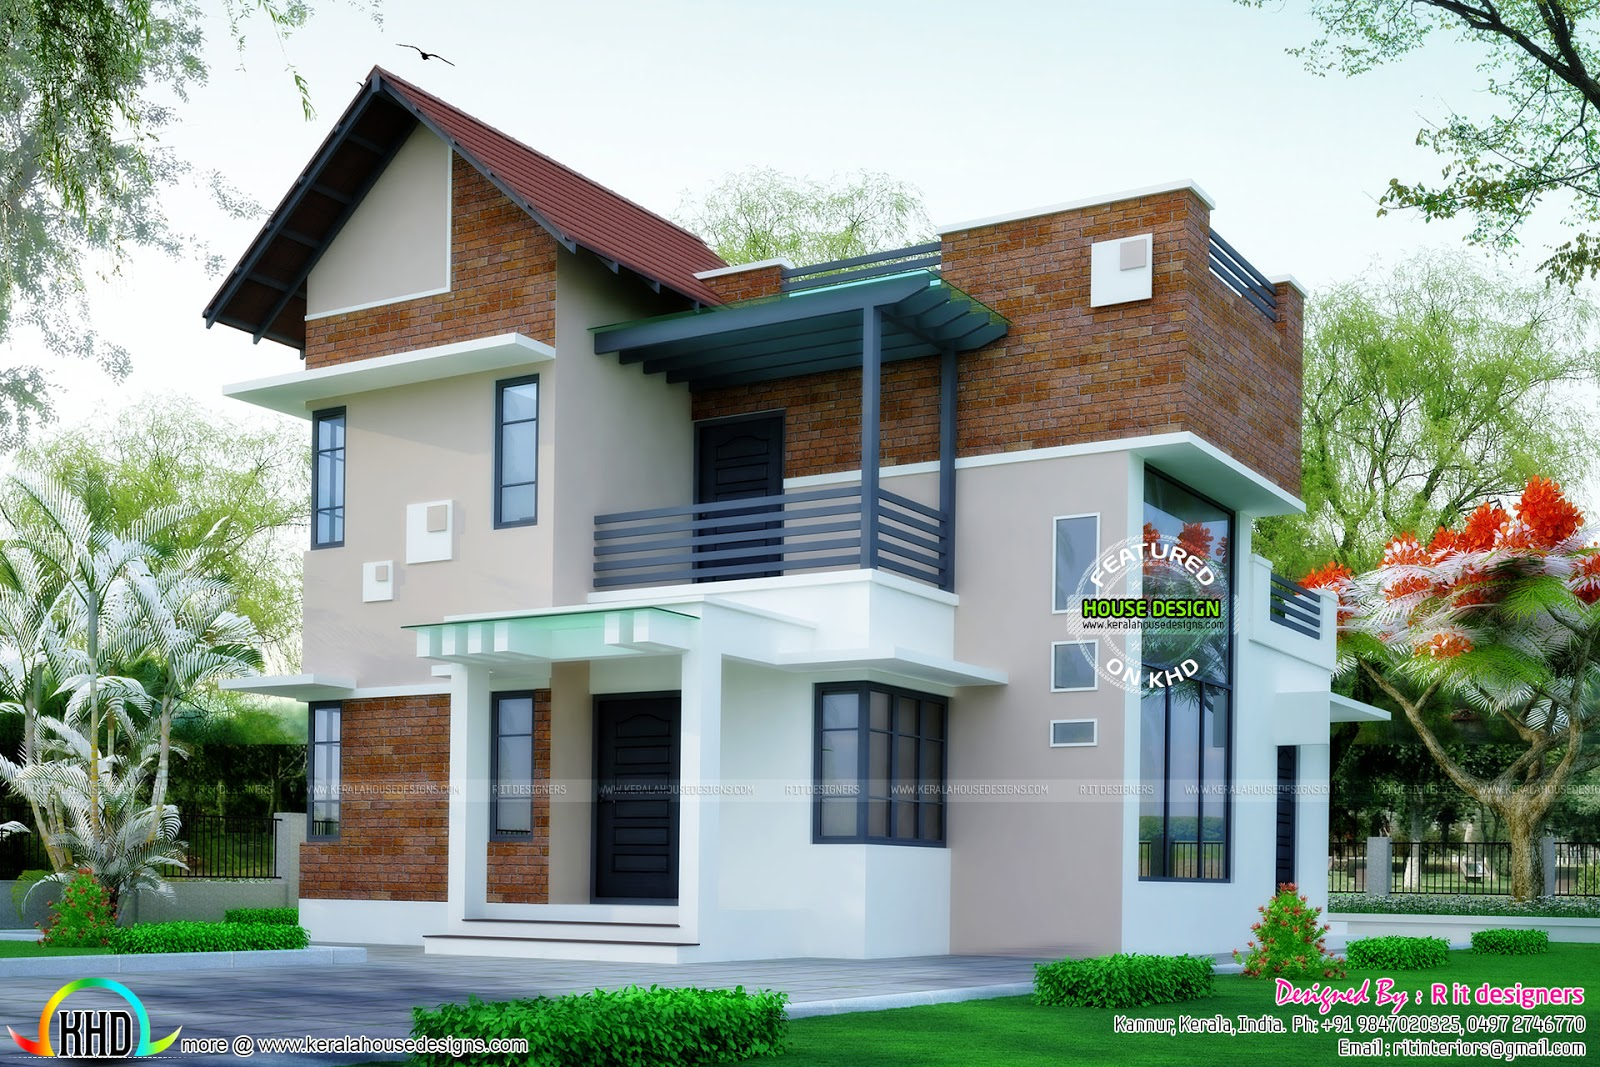 Brick wall mix modern house plan kerala home design and for Brick house designs